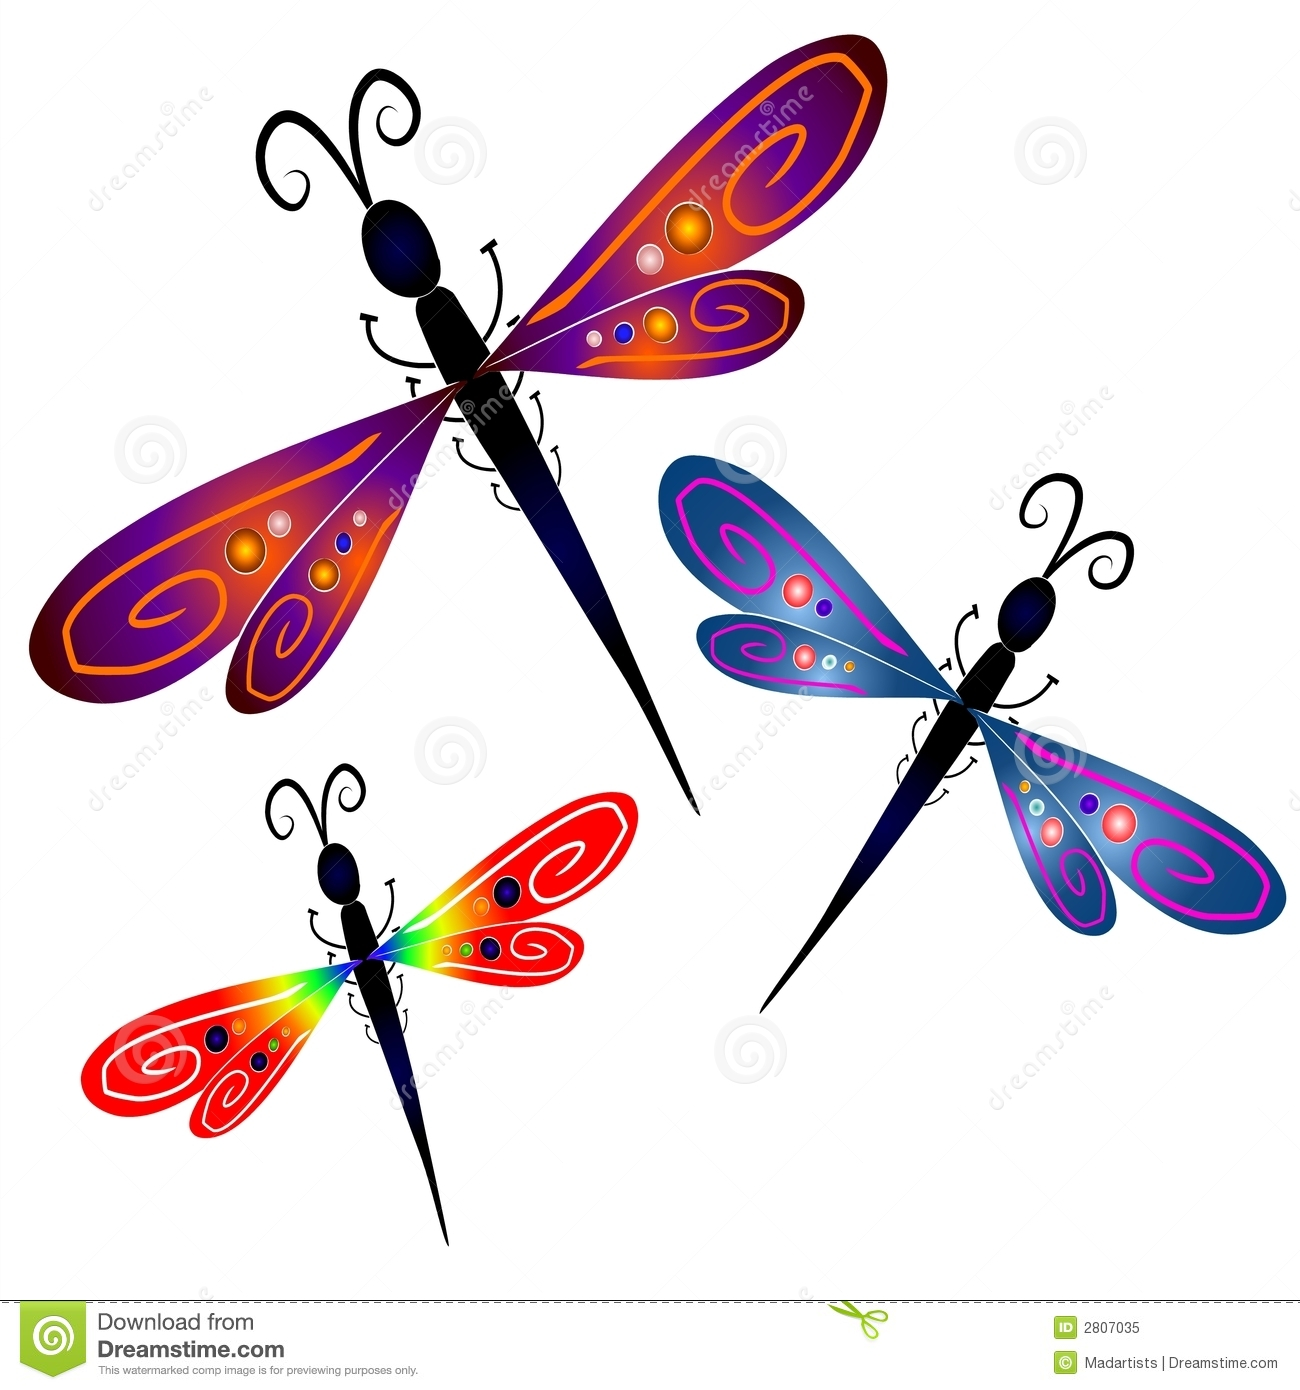 abstract dragonfly clip art stock illustration illustration of rh dreamstime com dragonfly clip art pictures dragonfly clip art images